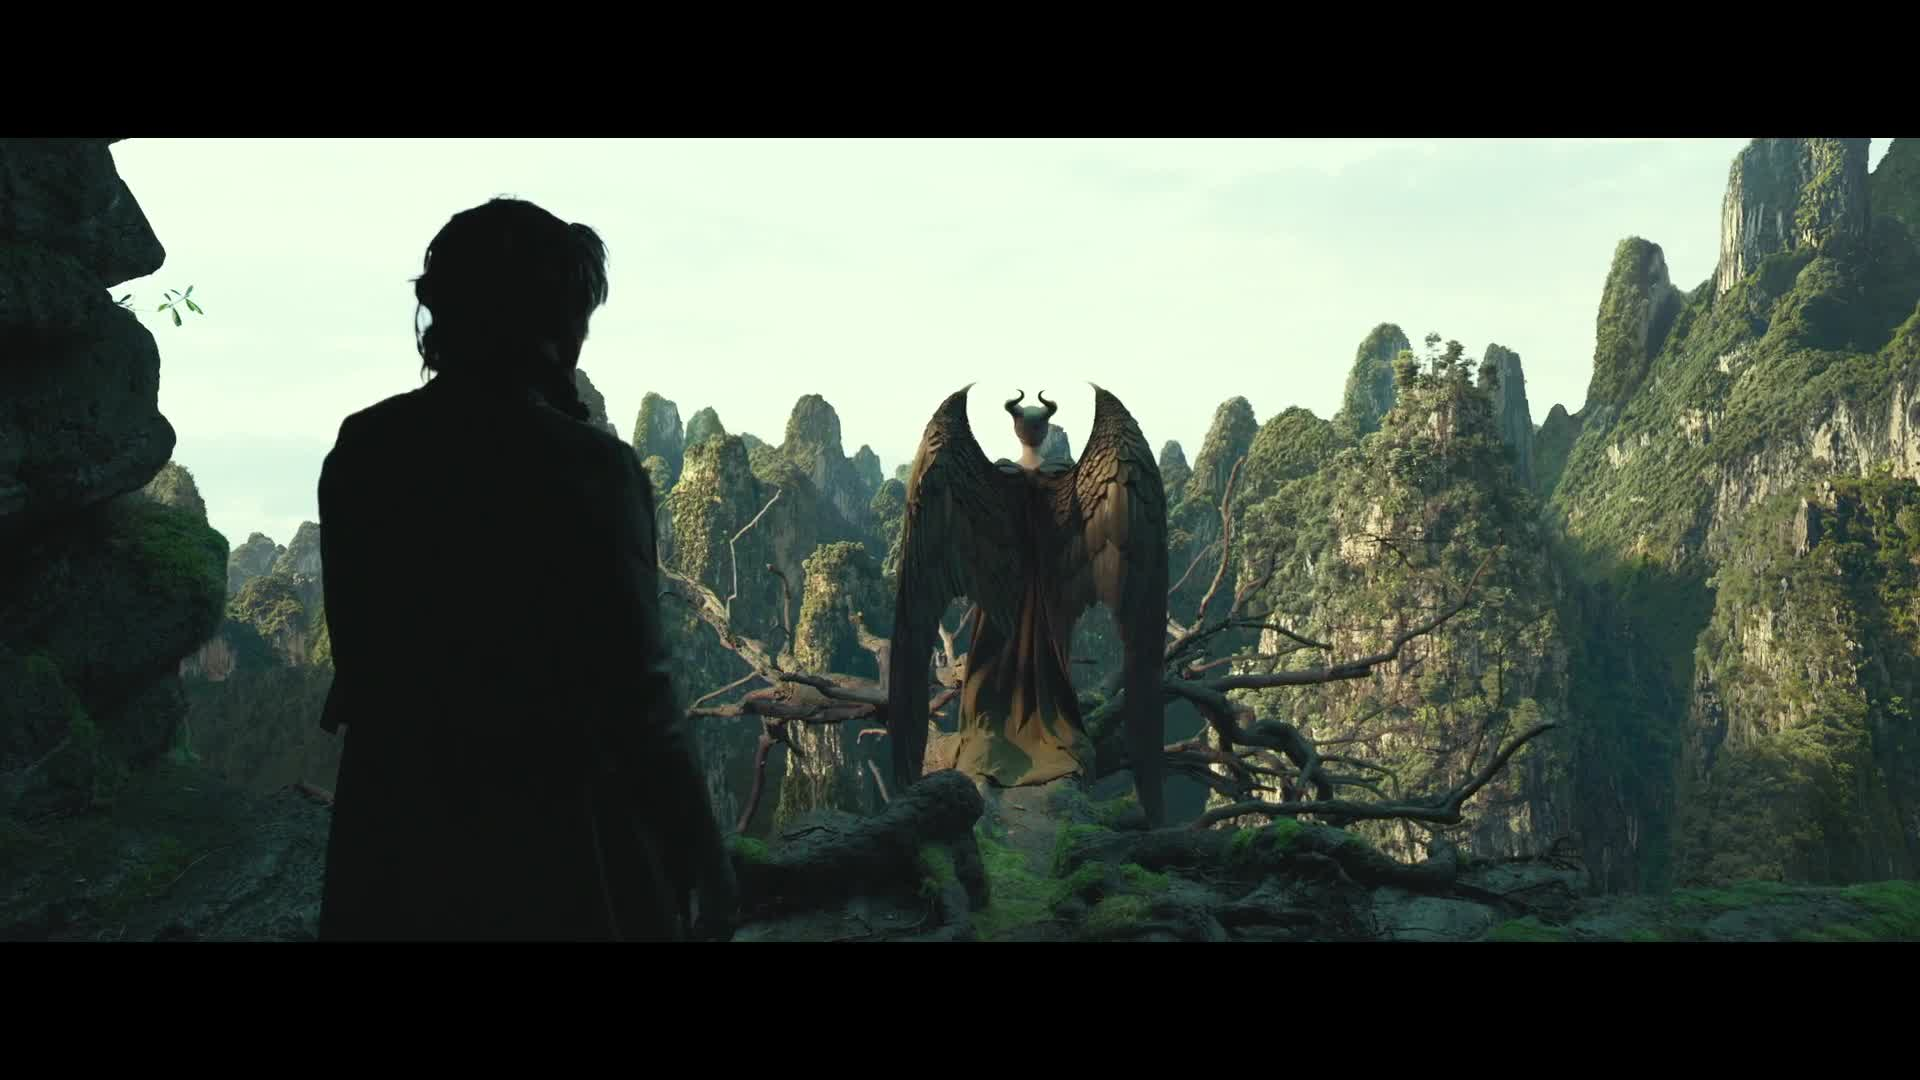 Maleficent: Mistress of Evil - 2 New Movie Clips [HD] screen capture